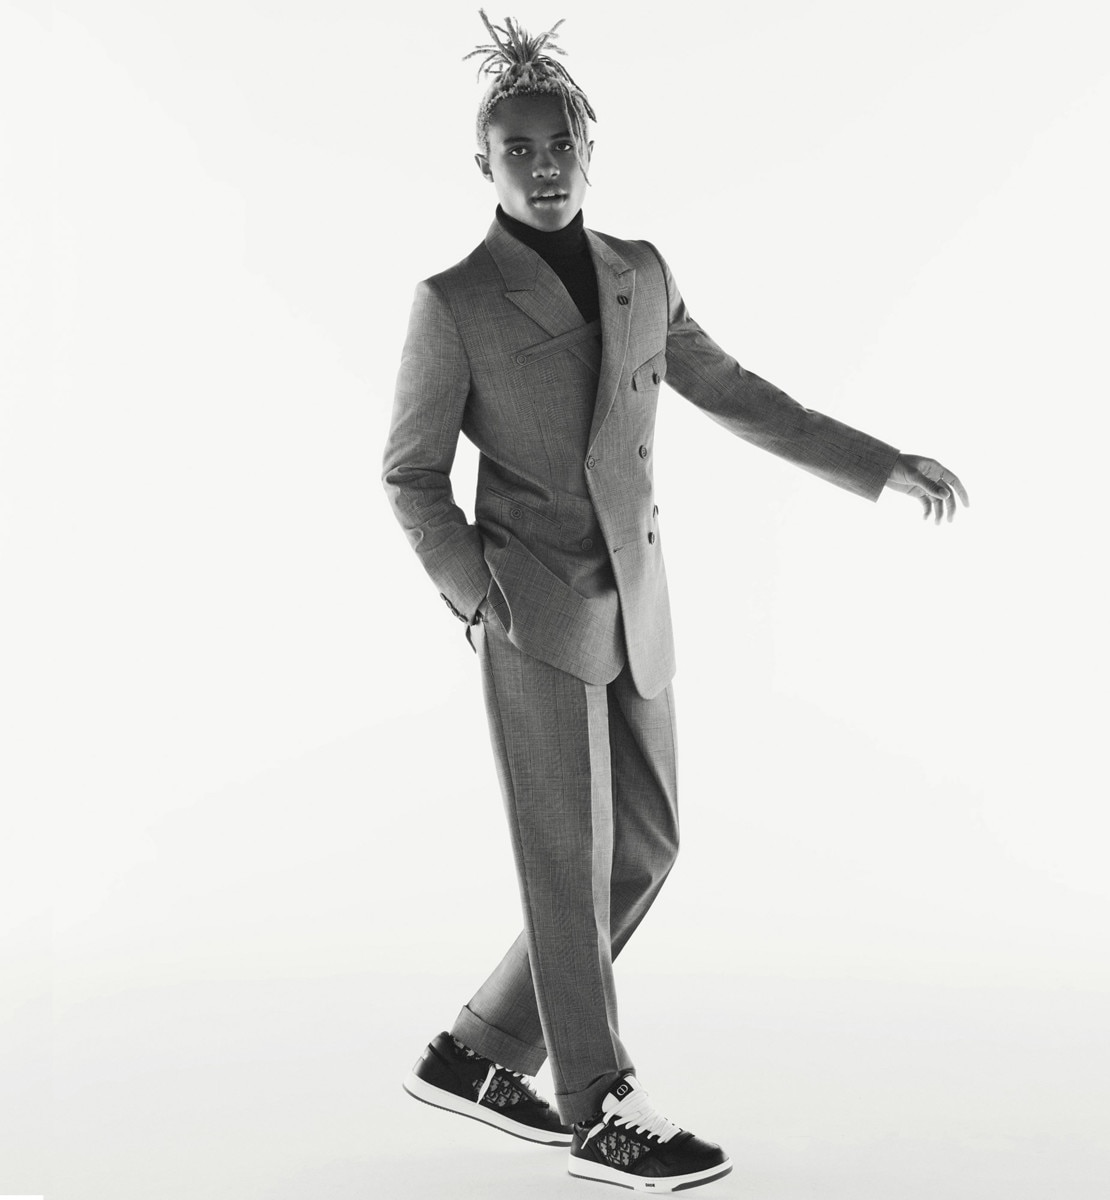 Dior Men's Modern Tailoring Holiday 2020 Ad Campaign Film & Photos